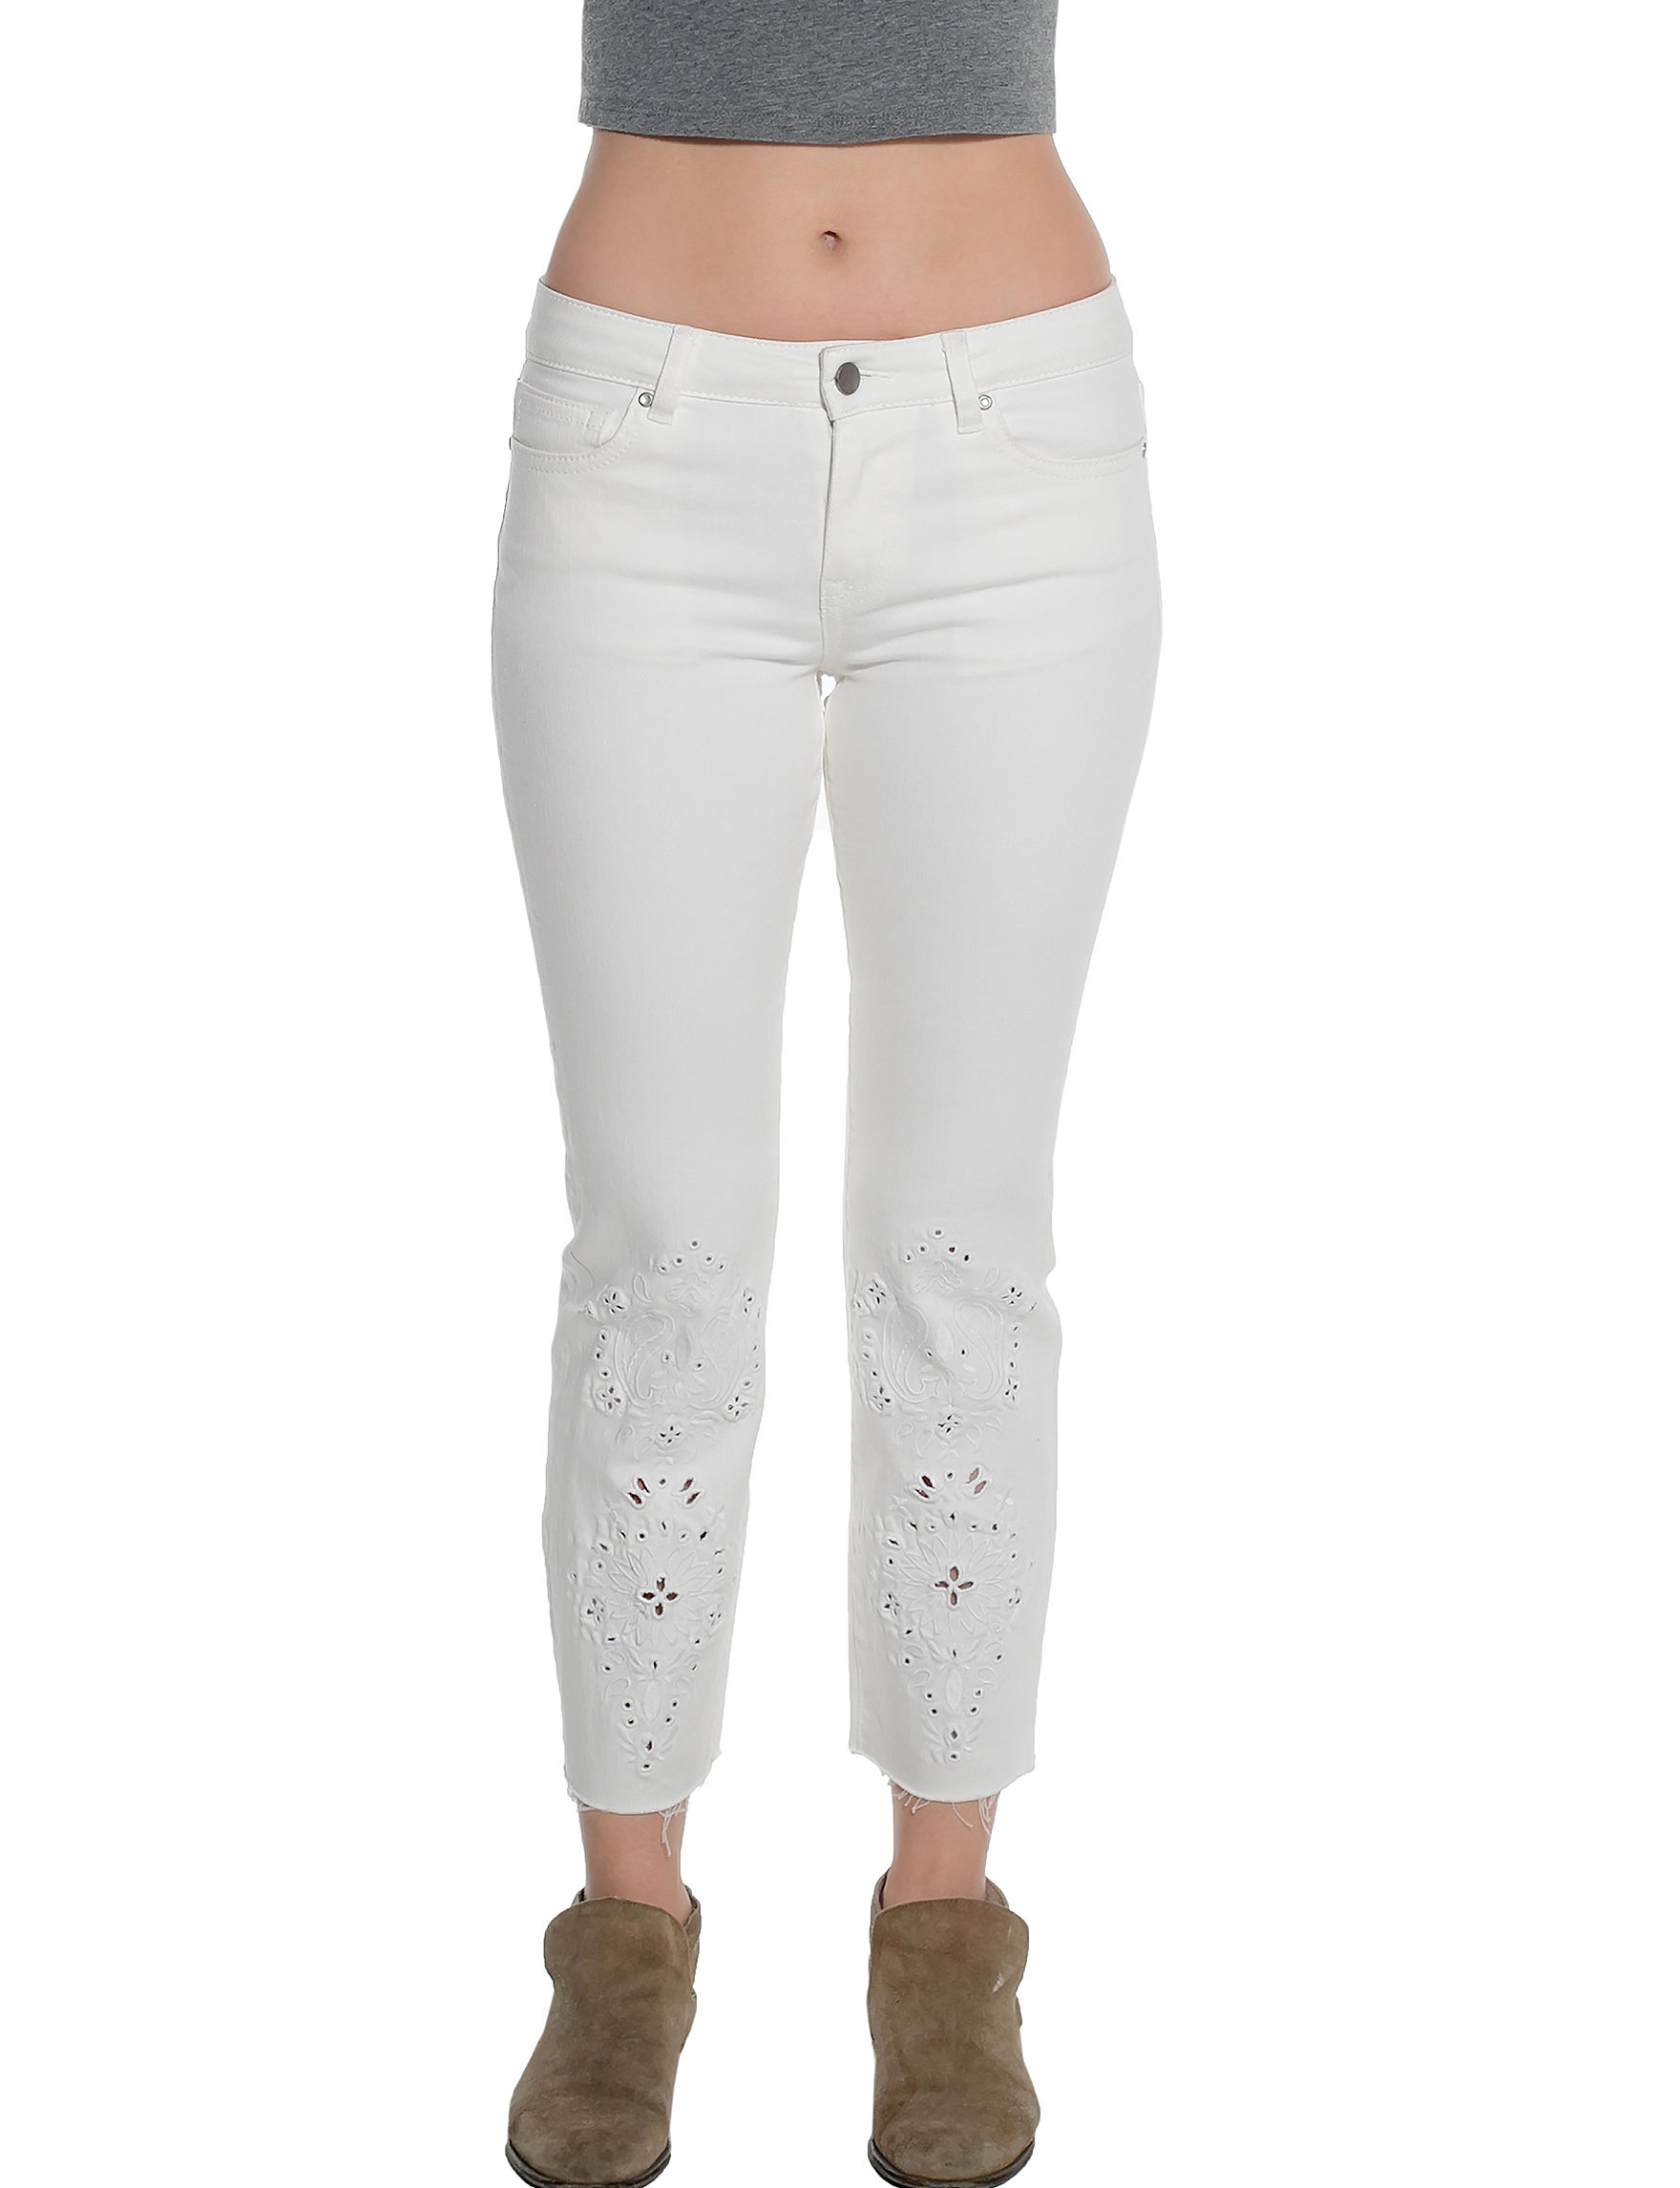 C + J Collections White Skinny